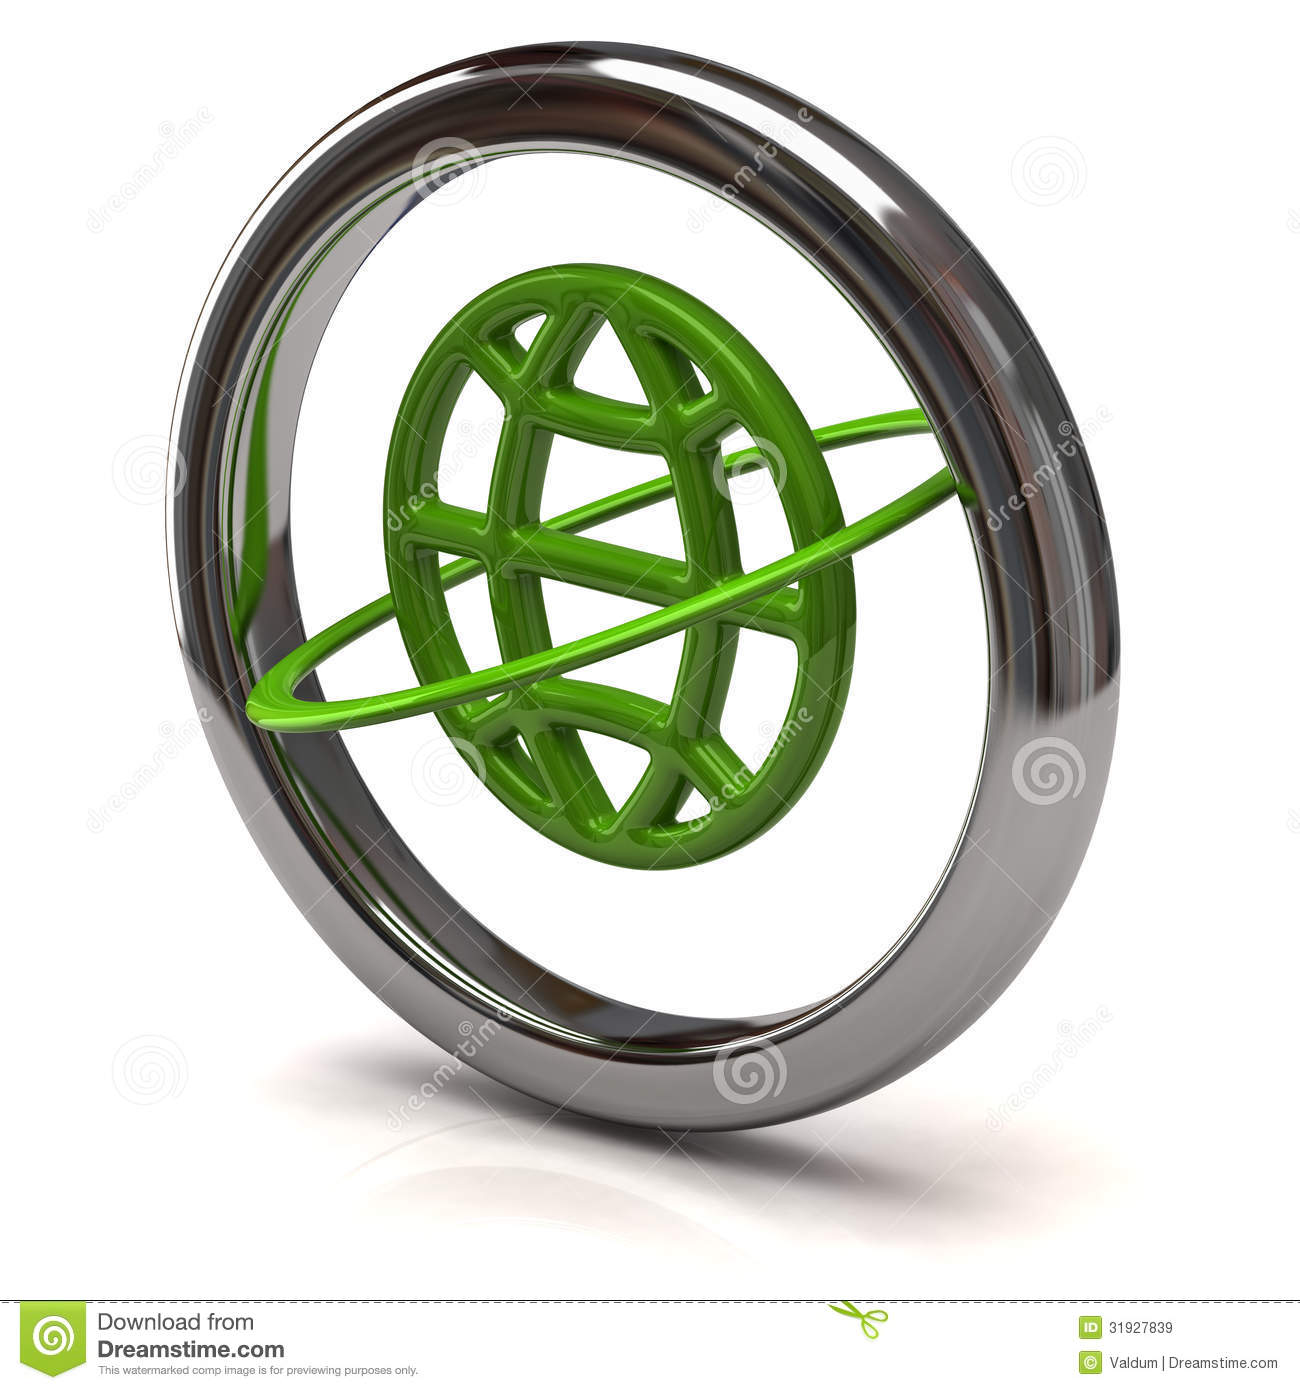 Green Globe Icon Royalty Free Stock Images - Image: 31927839